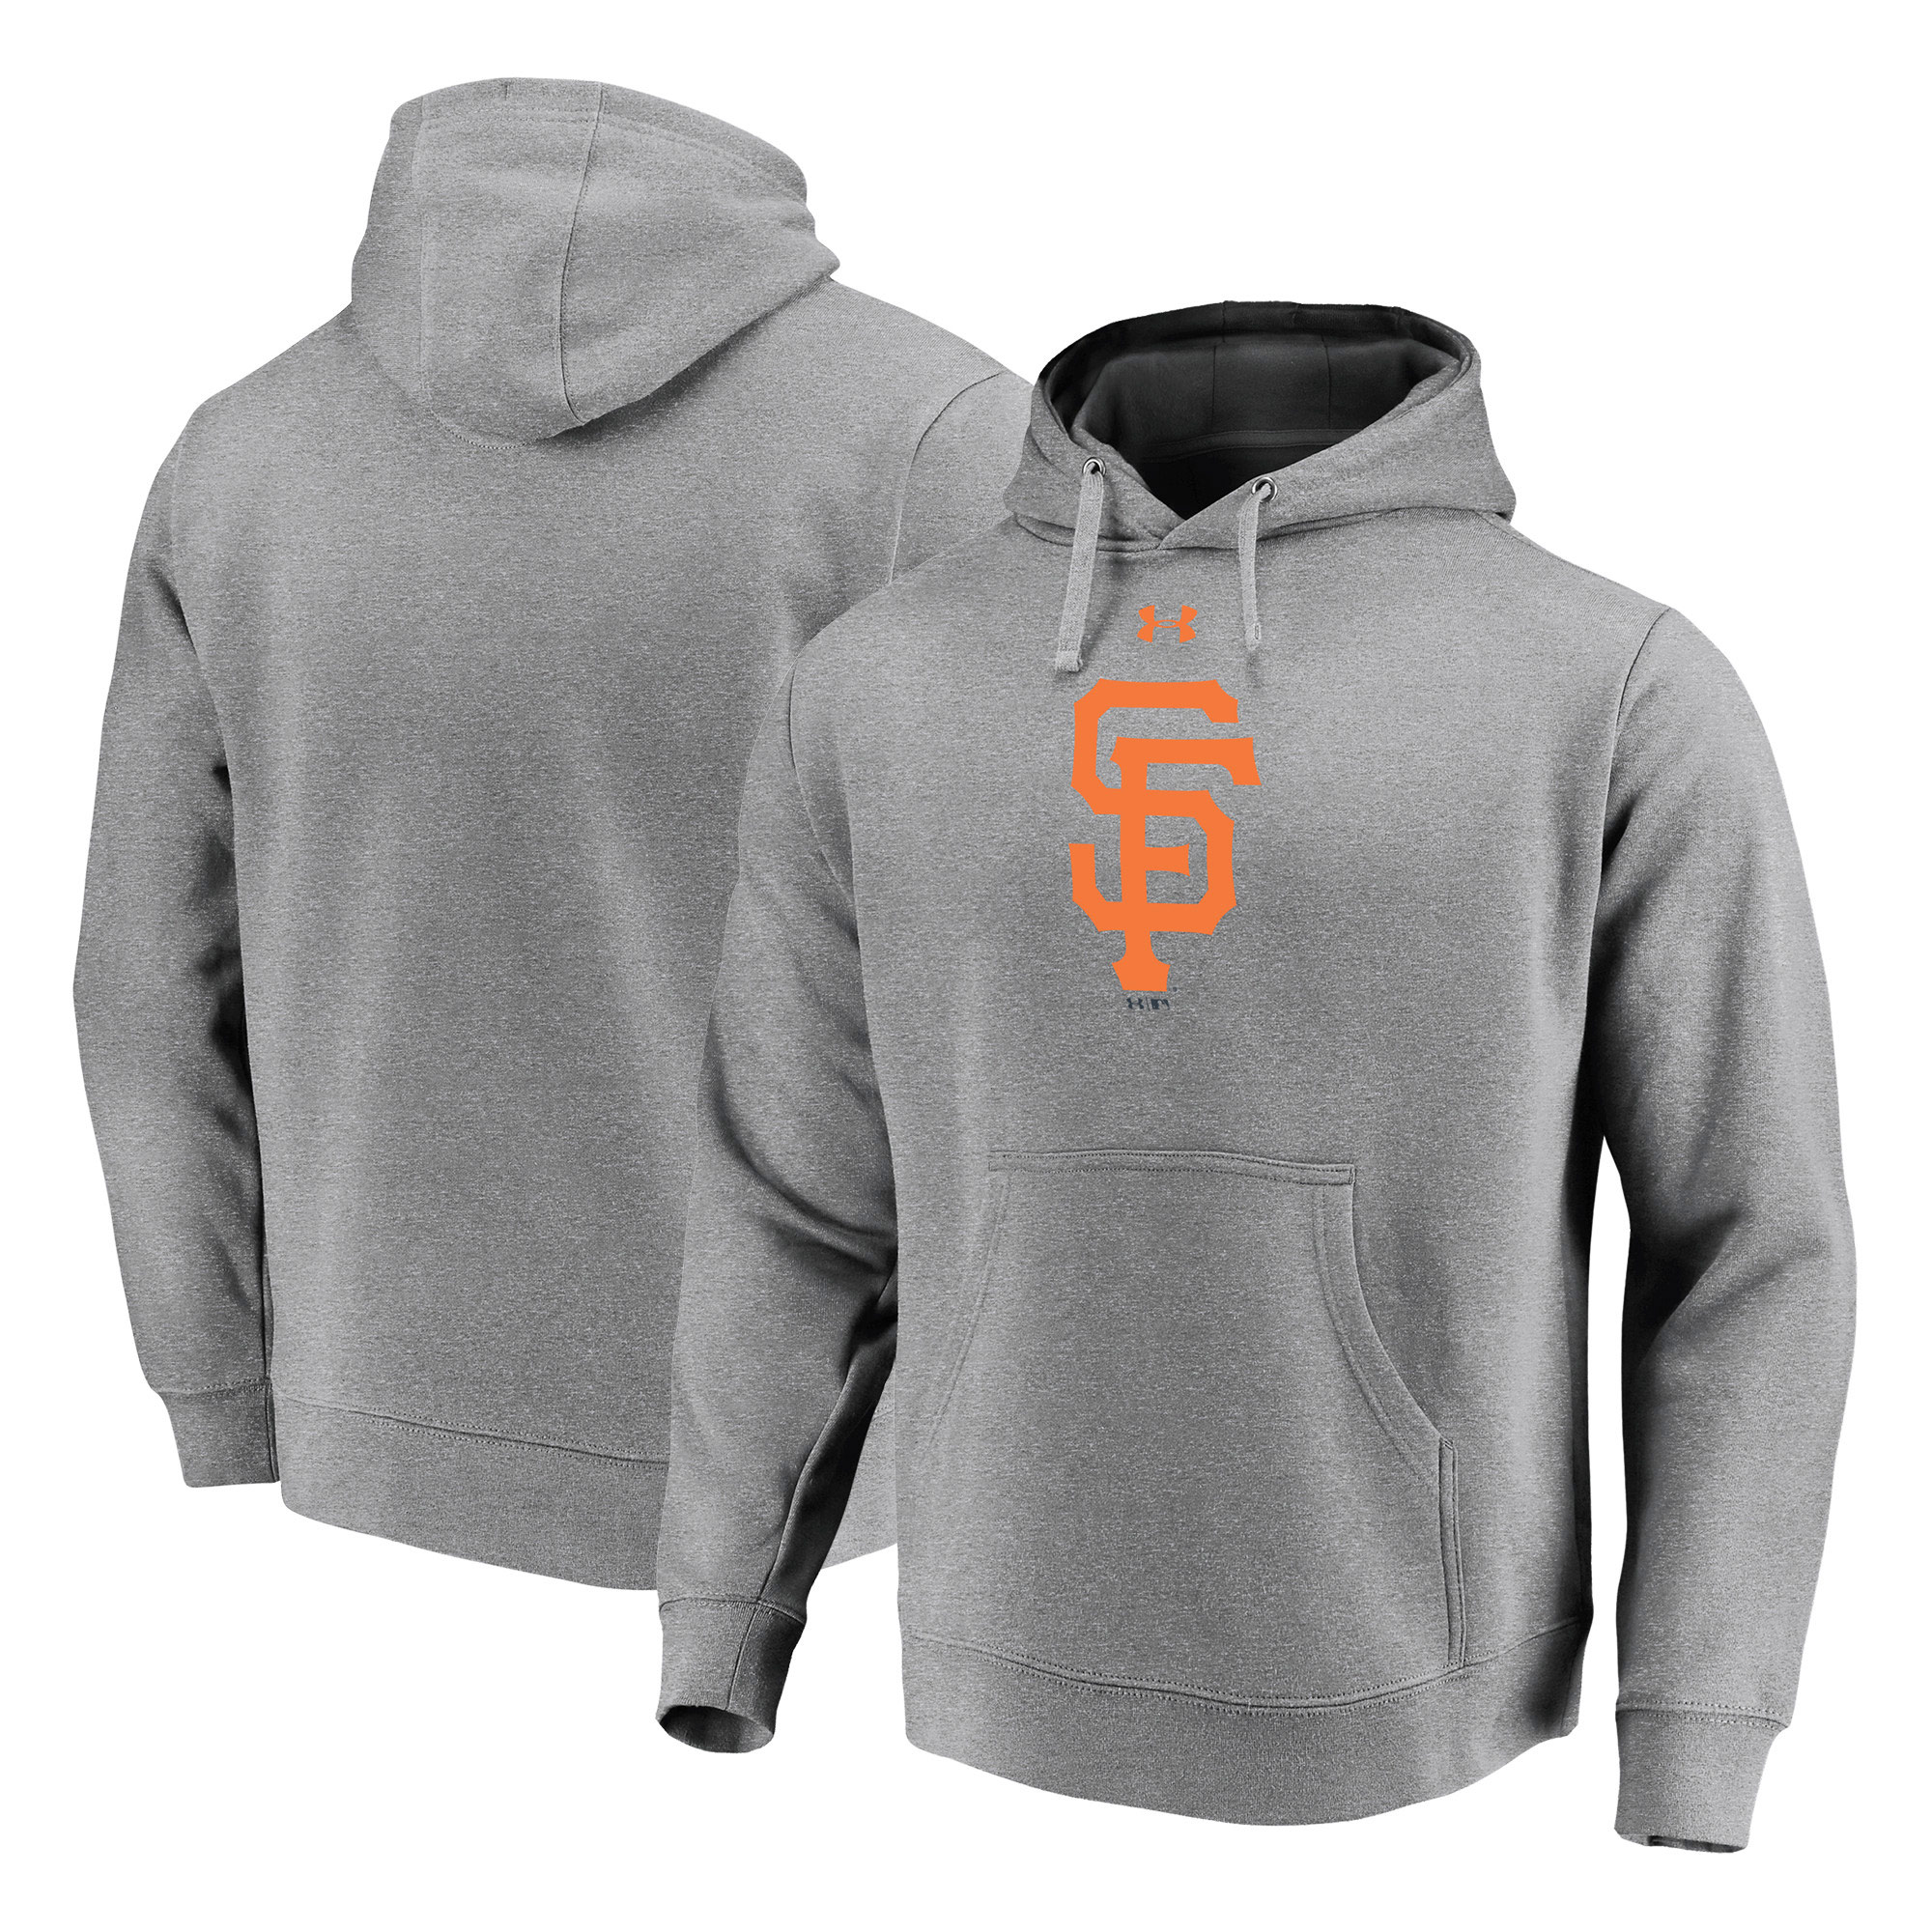 San Francisco Giants Under Armour Commitment Team Mark Performance Pullover Hoodie - Heathered Gray